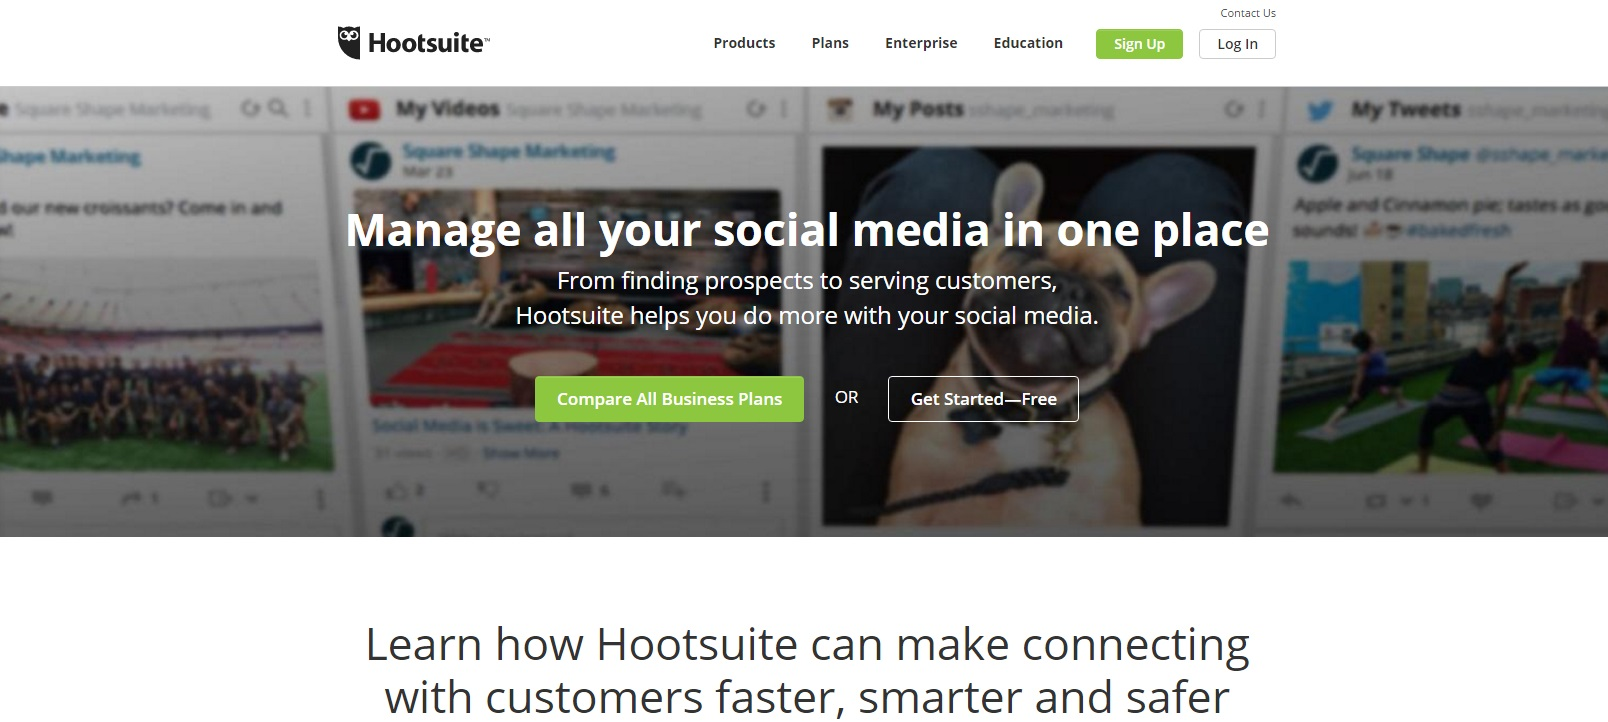 Hootsuite Social Media Management